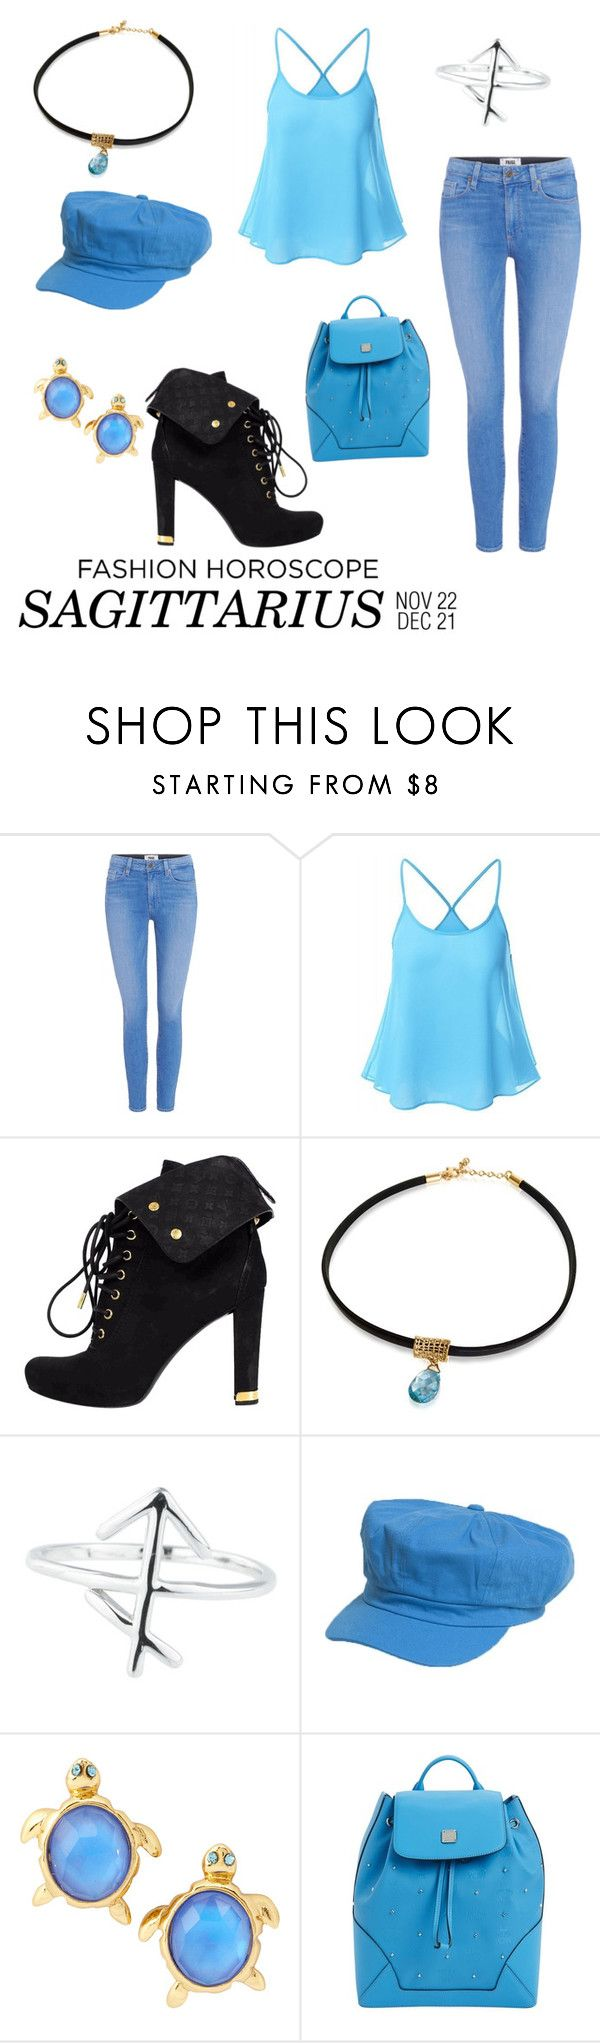 """Sagitario"" by disneybound-mexico ❤ liked on Polyvore featuring Paige Denim, Louis Vuitton, Rock 'N Rose, Kate Spade, MCM, fashionhoroscope and stylehoroscope"